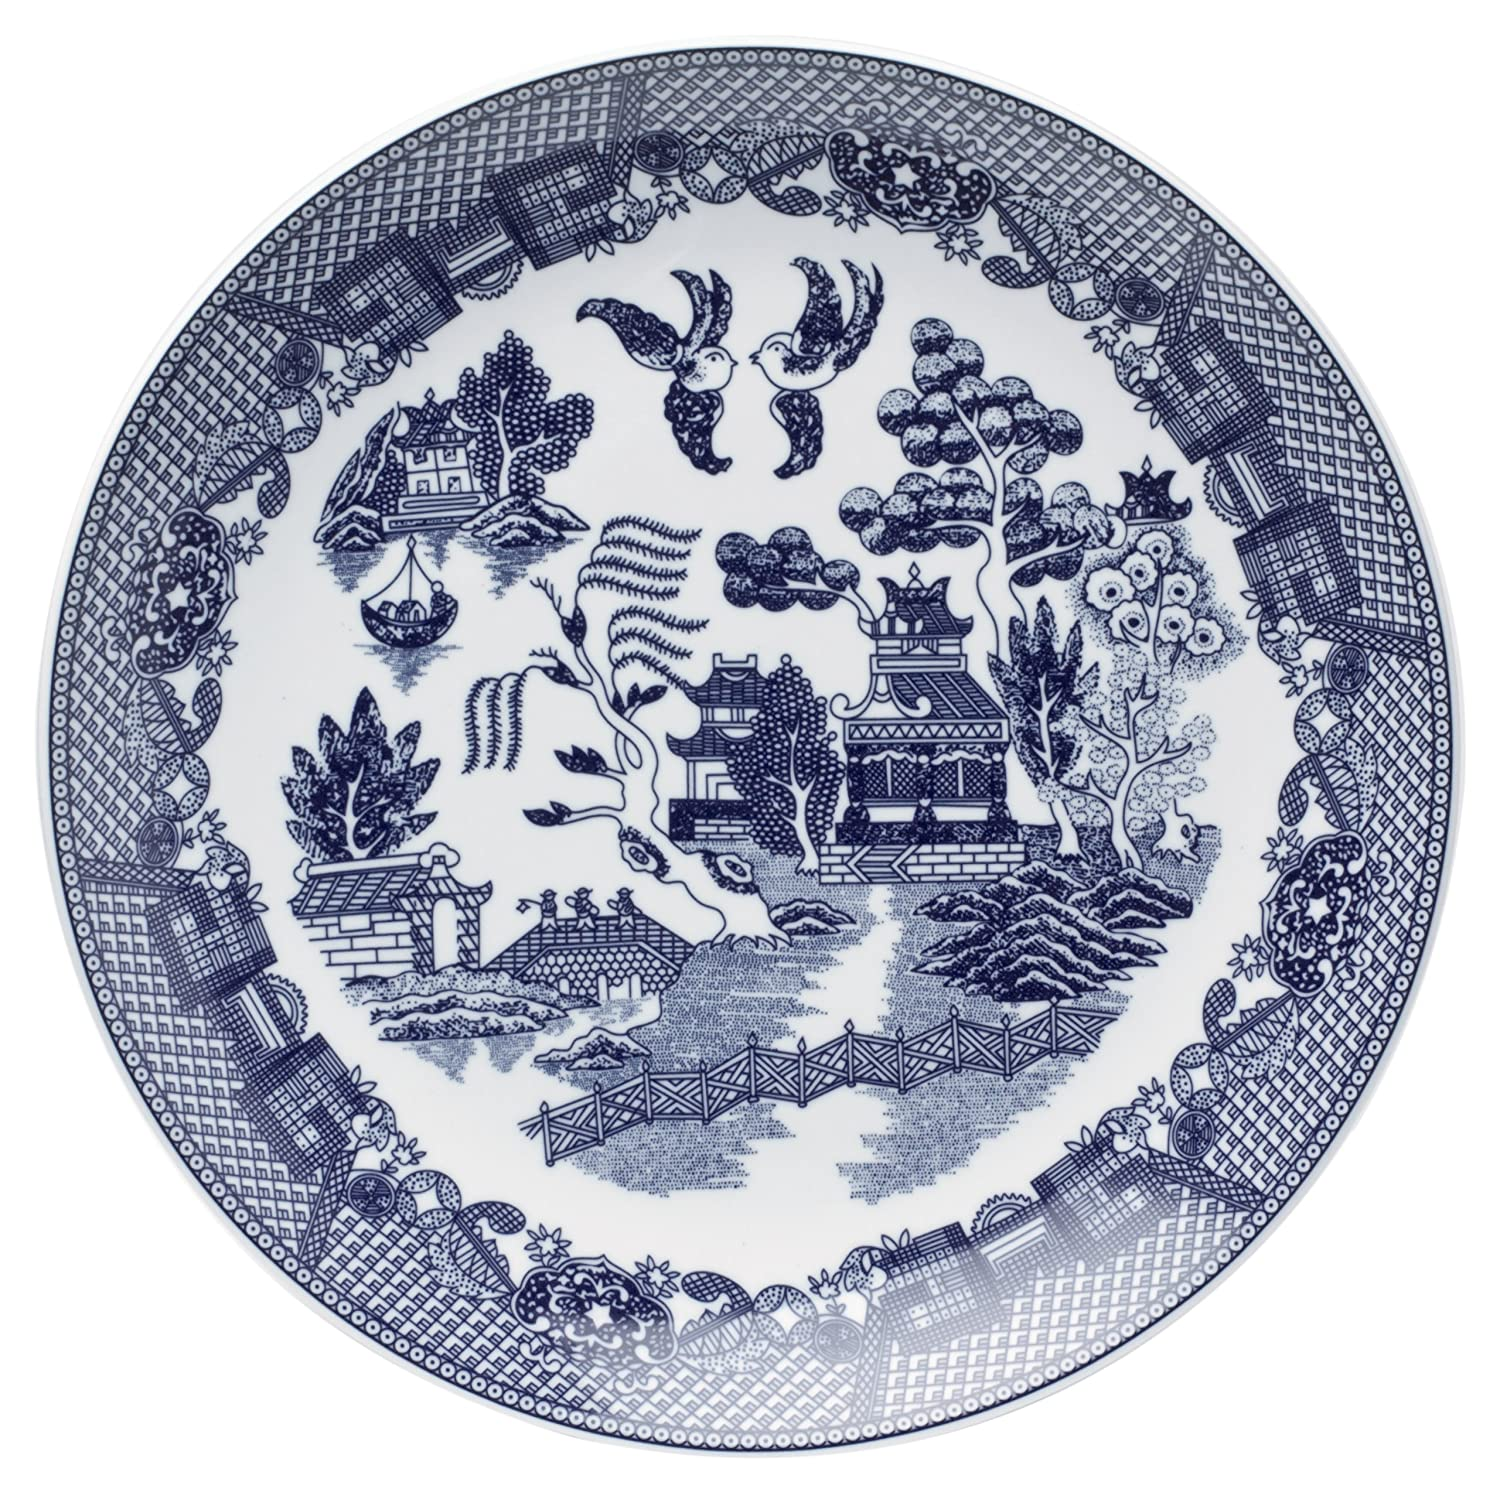 HIC Brands that Cook Blue Willow 12-1/4-Inch Buffet Plate YK-319